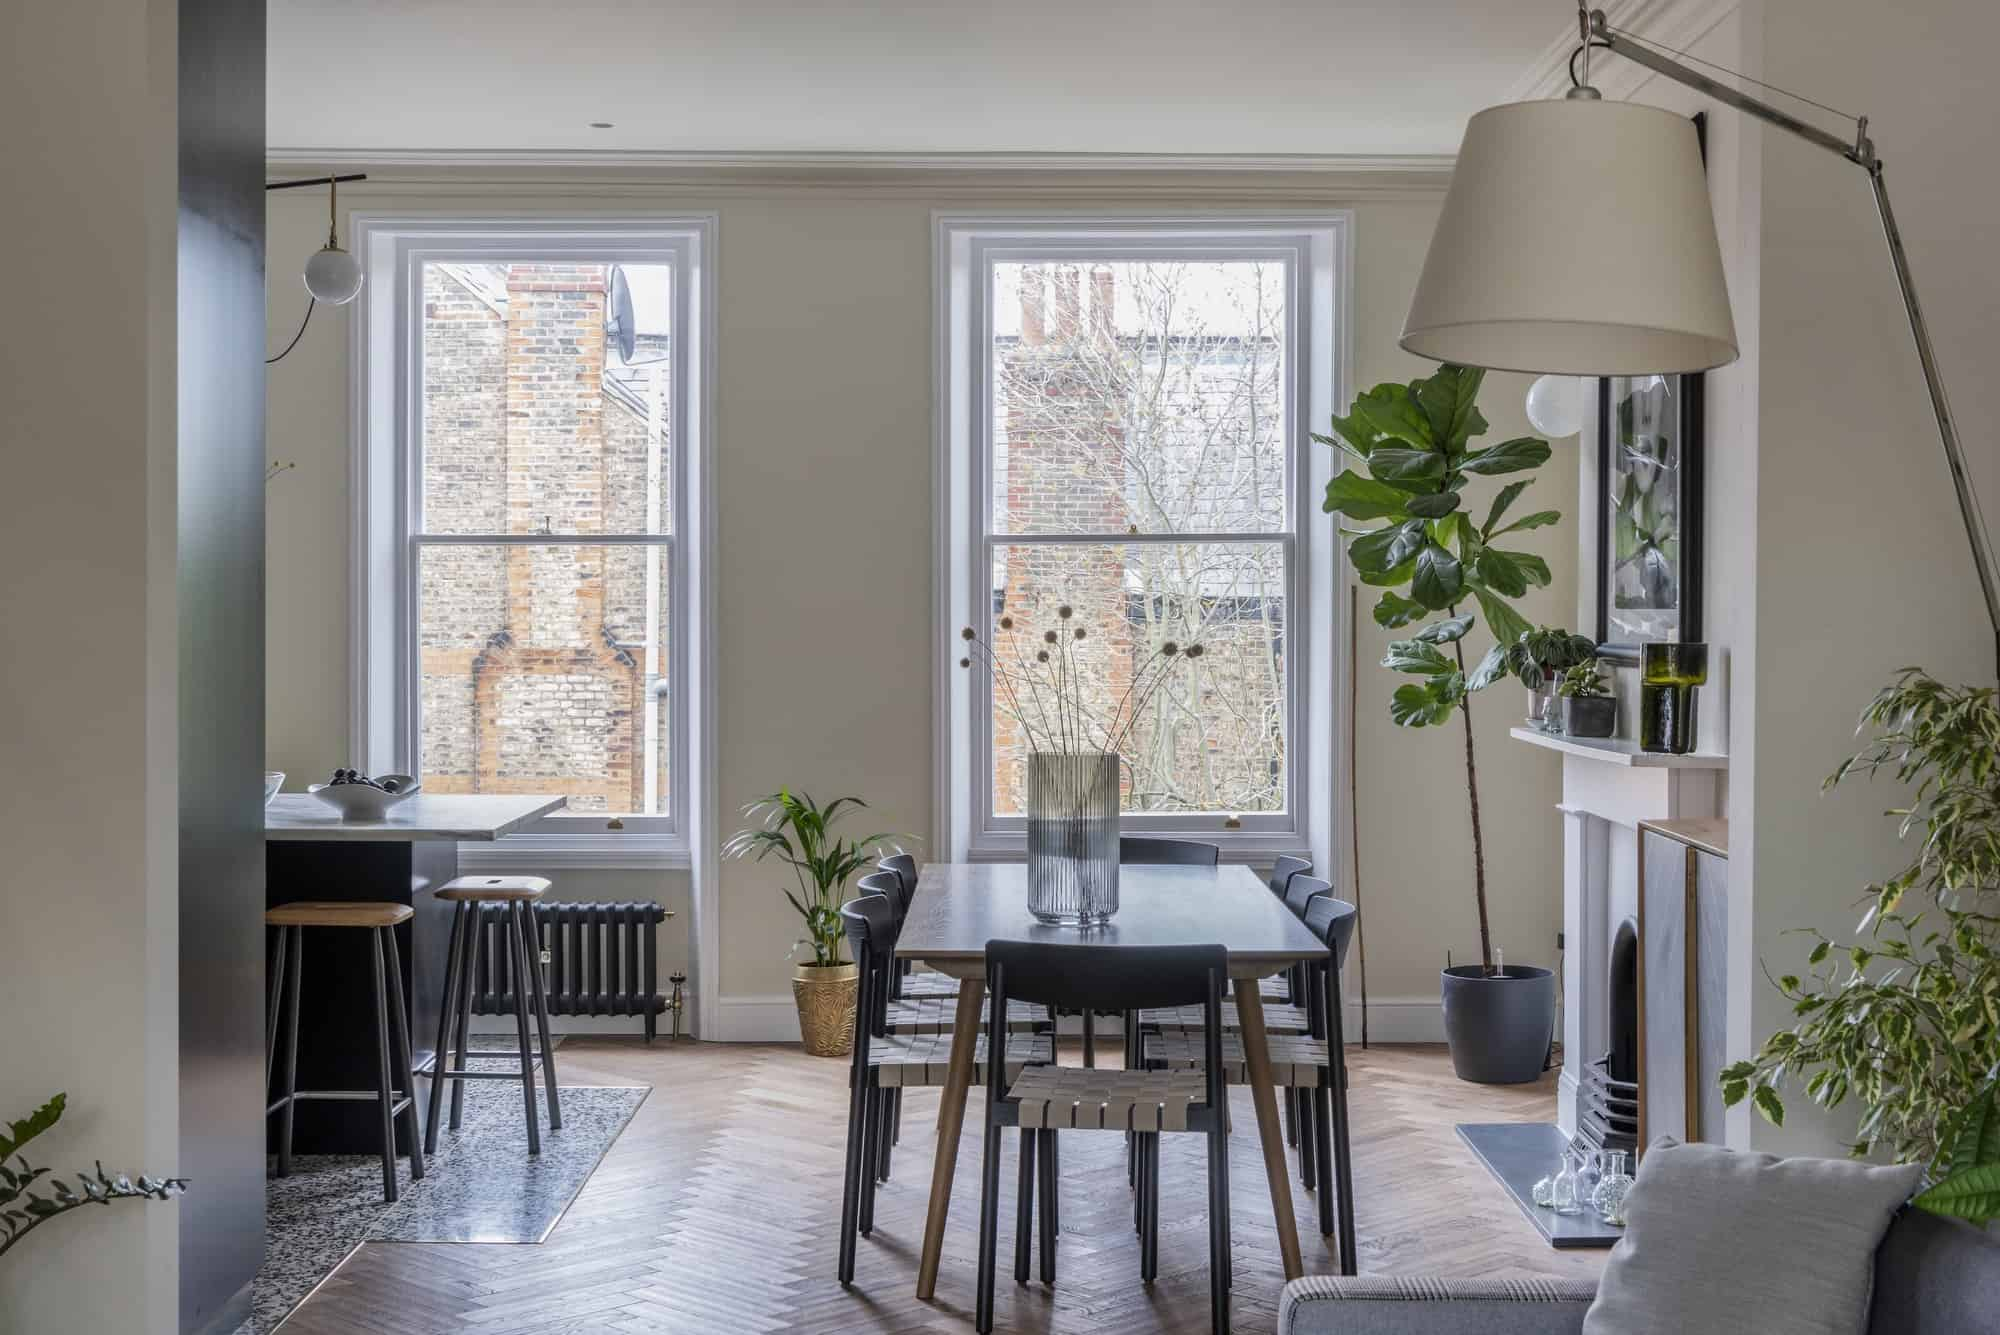 Highbury N5 - A beautiful light filled eclectic apartment - The Location Guys